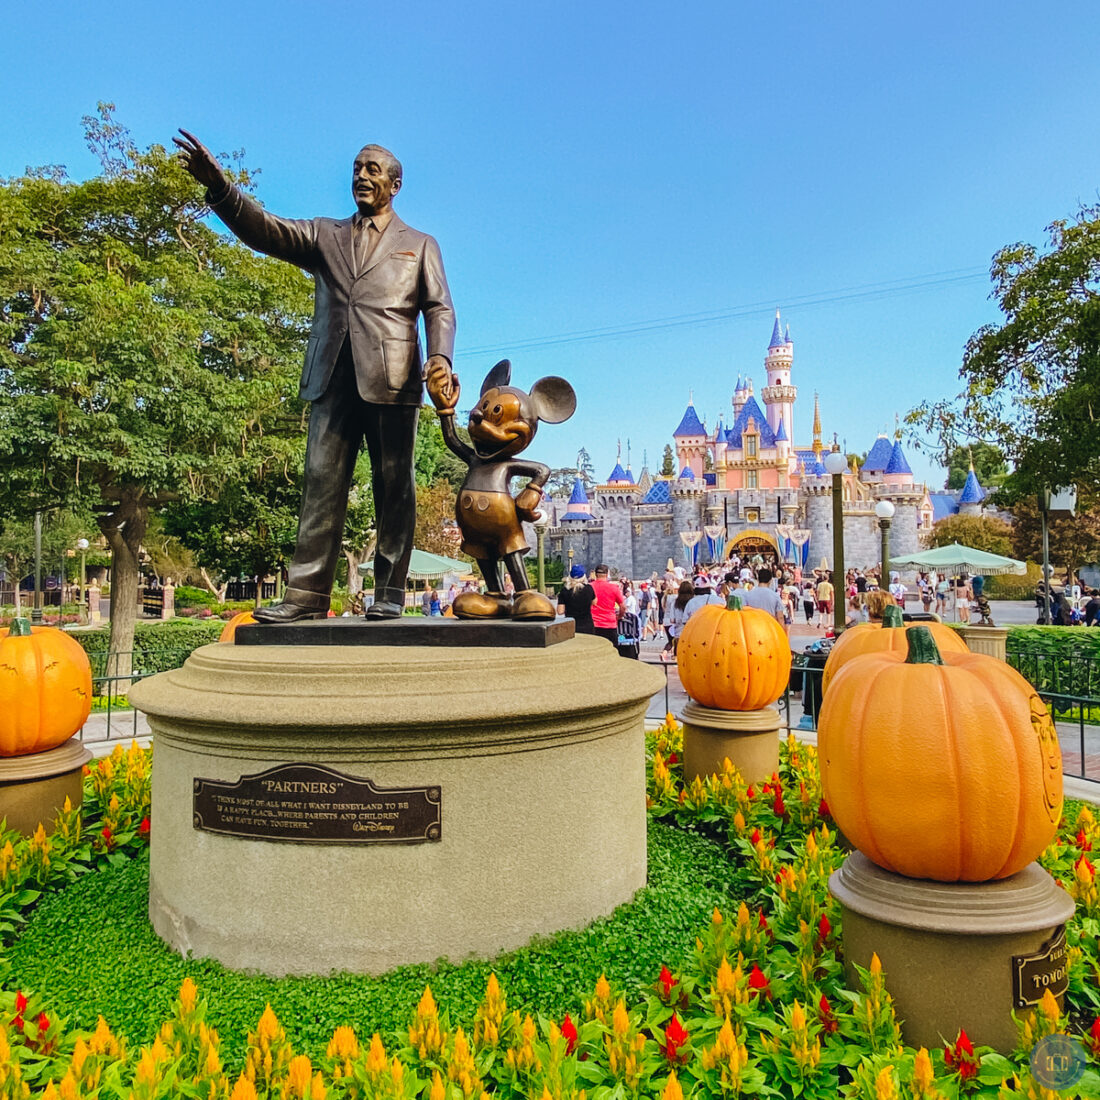 partners statue at disneyland with pumpkins and castle